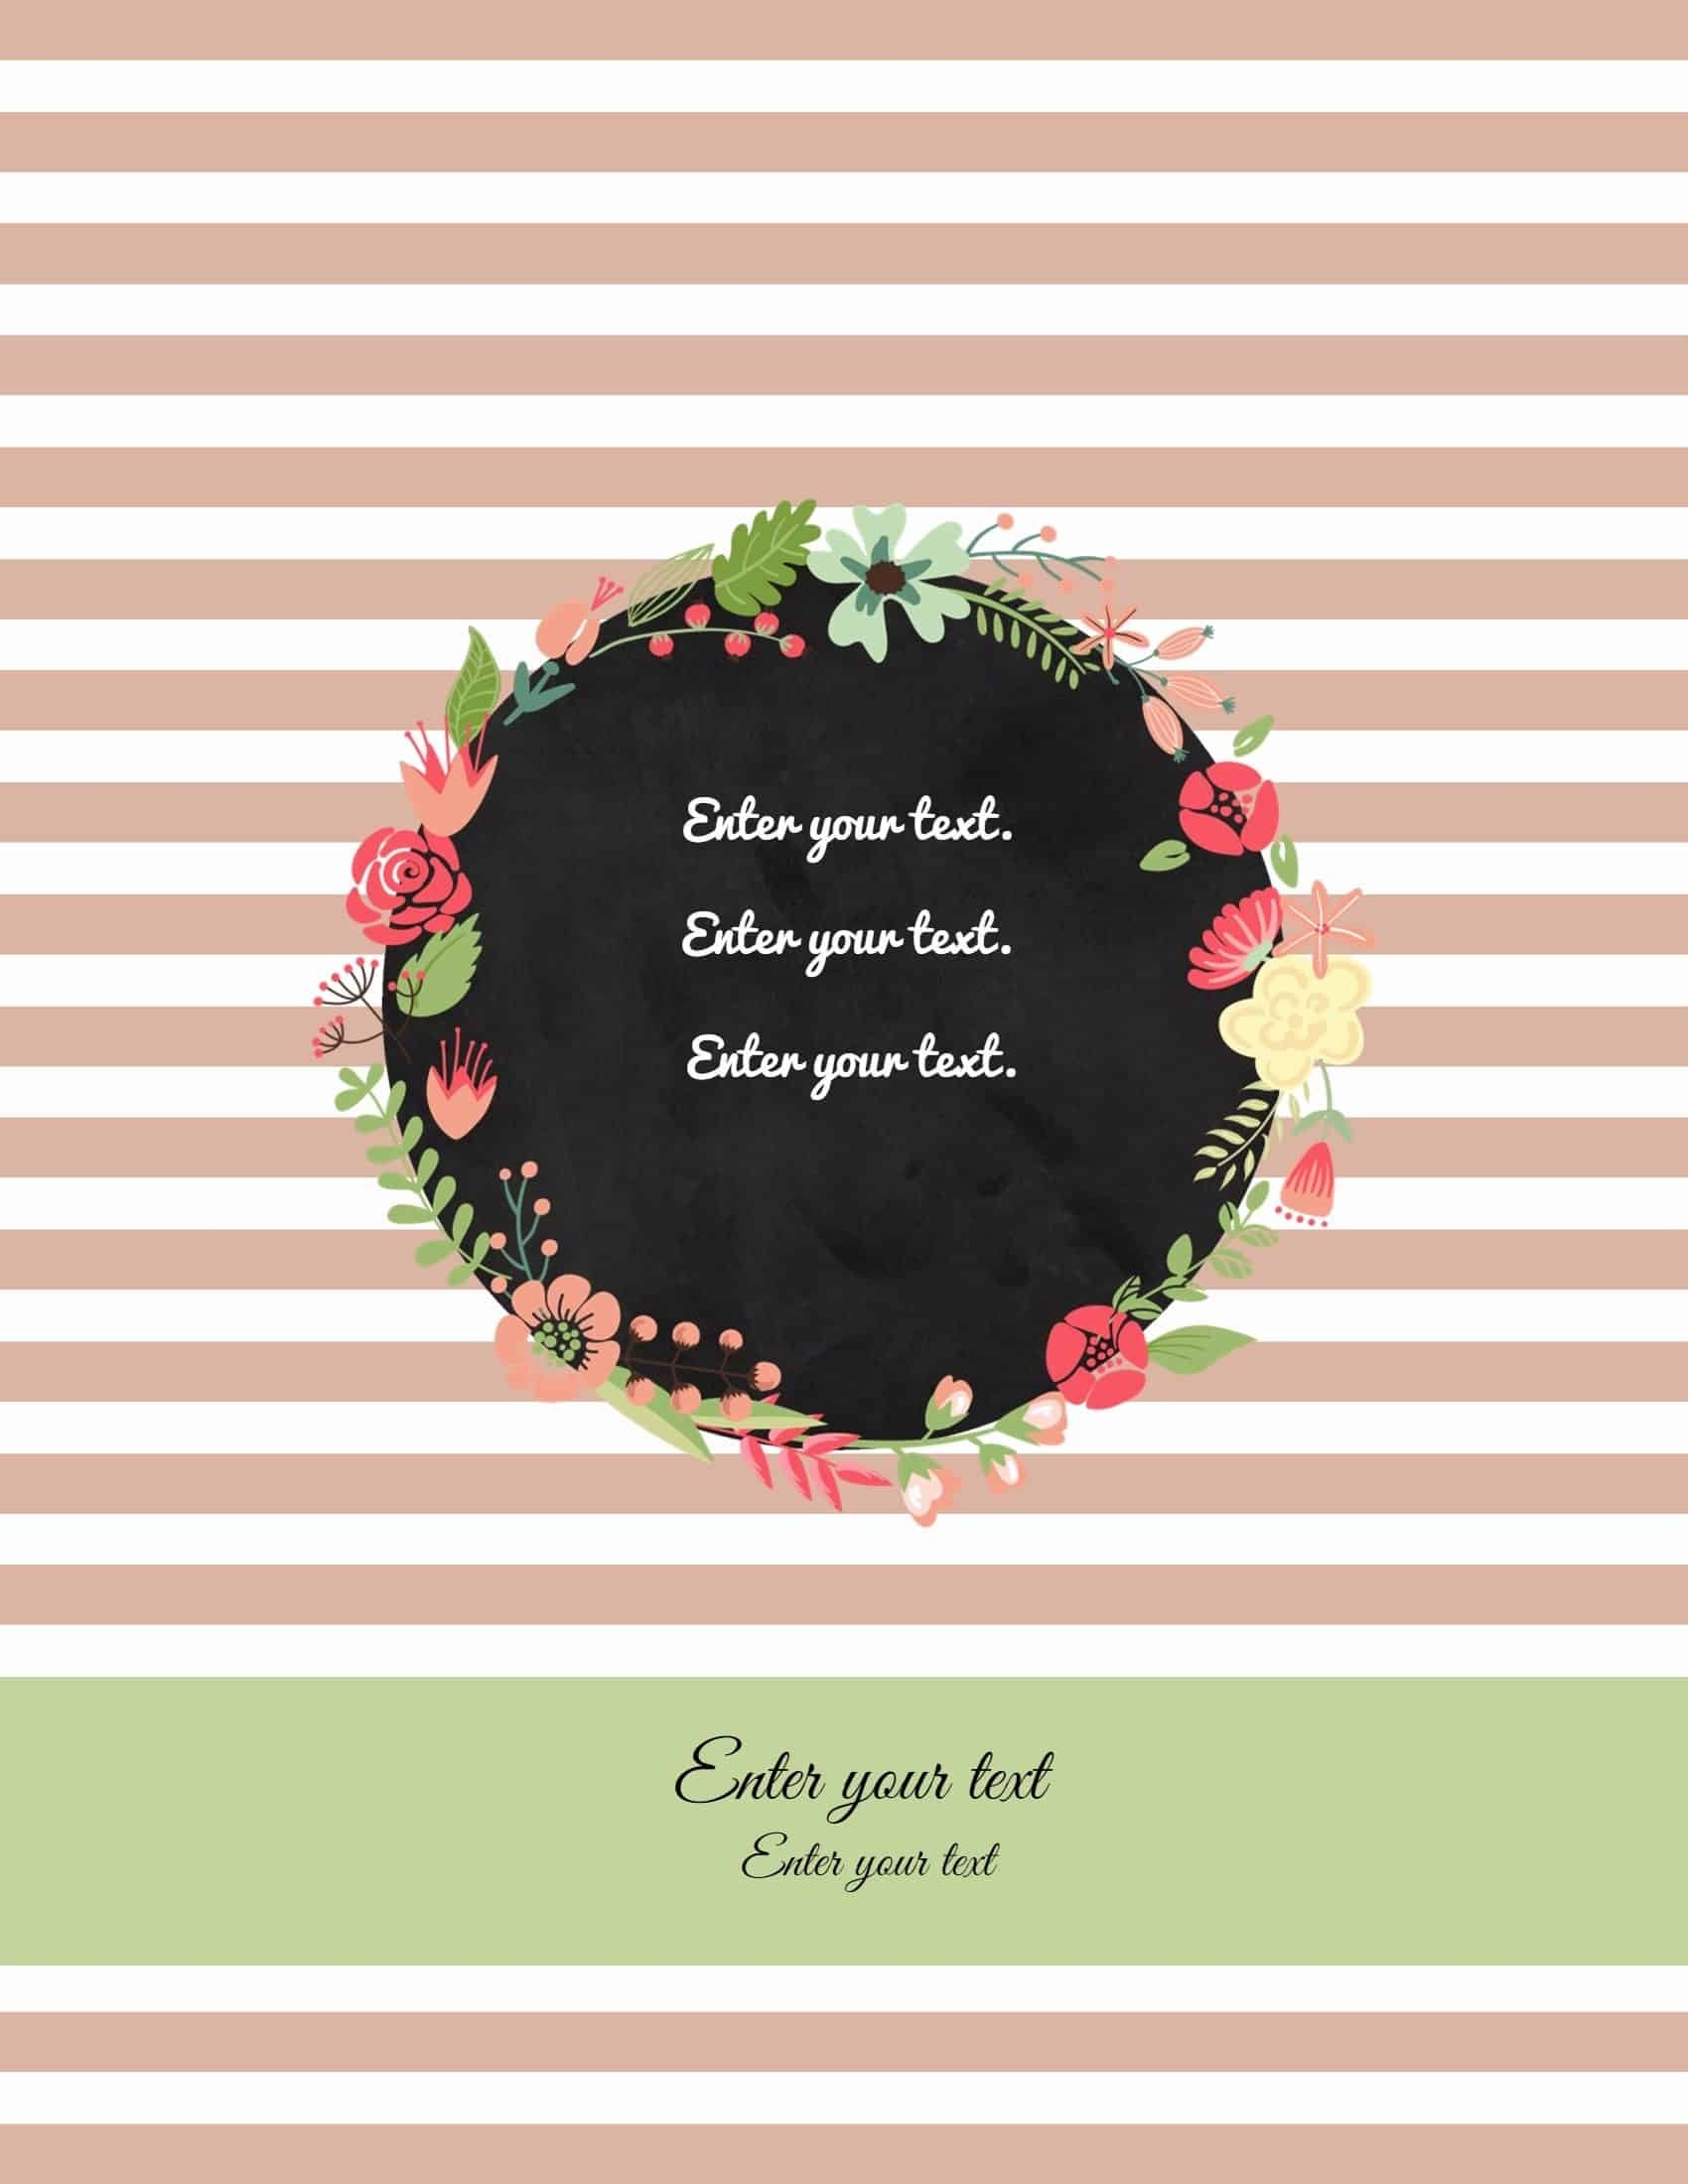 Free Binder Cover Templates   Customize Online & Print At Home   Free! - Free Printable School Binder Covers